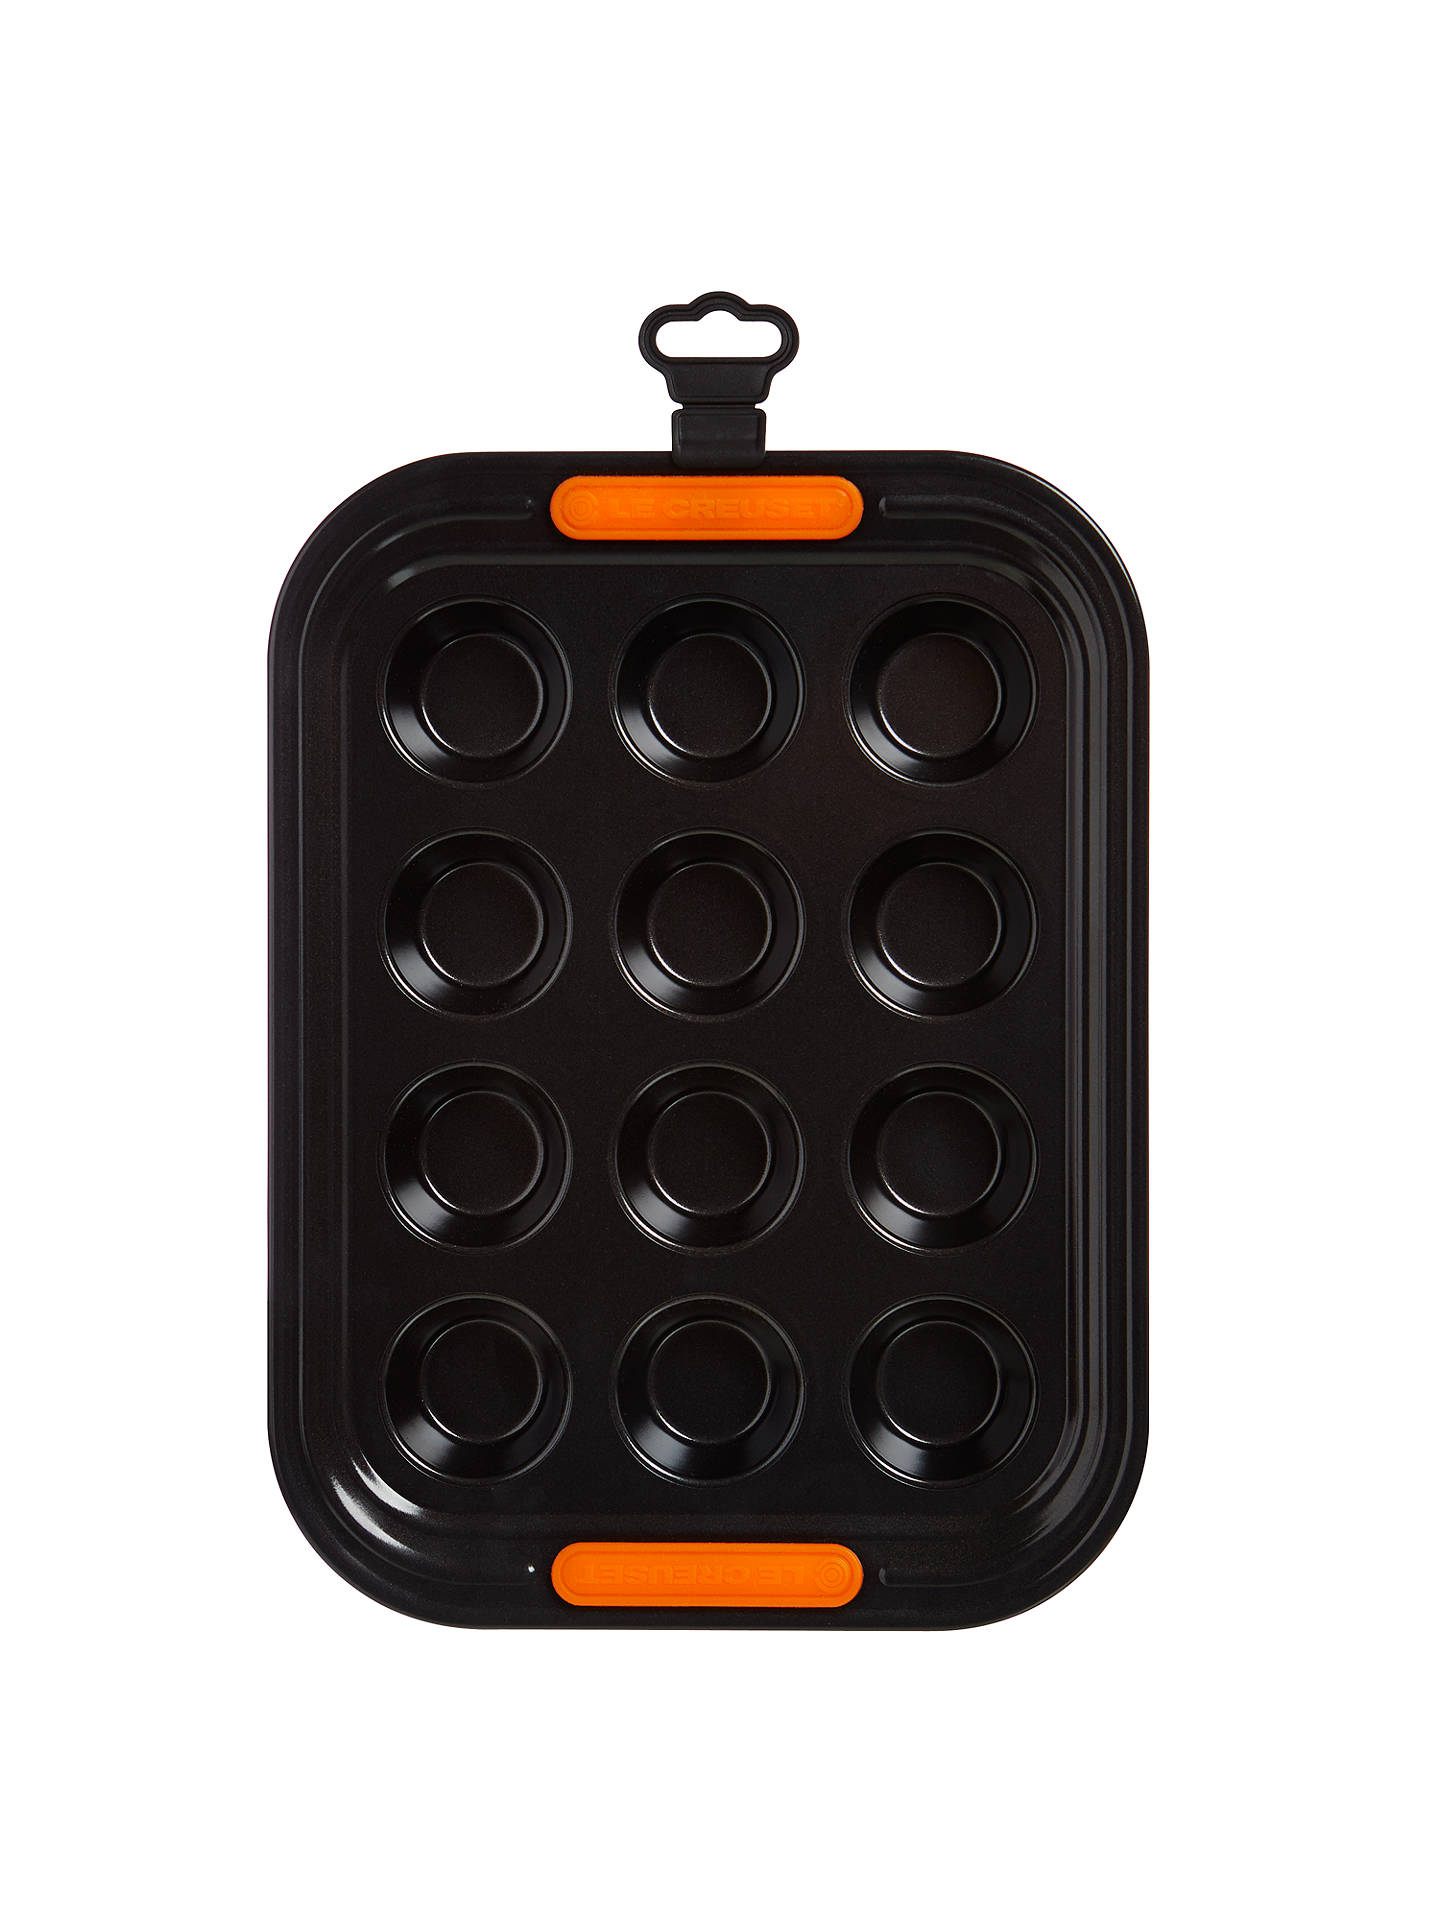 BuyLe Creuset 12 Cup Mini Muffin Tray Online at johnlewis.com